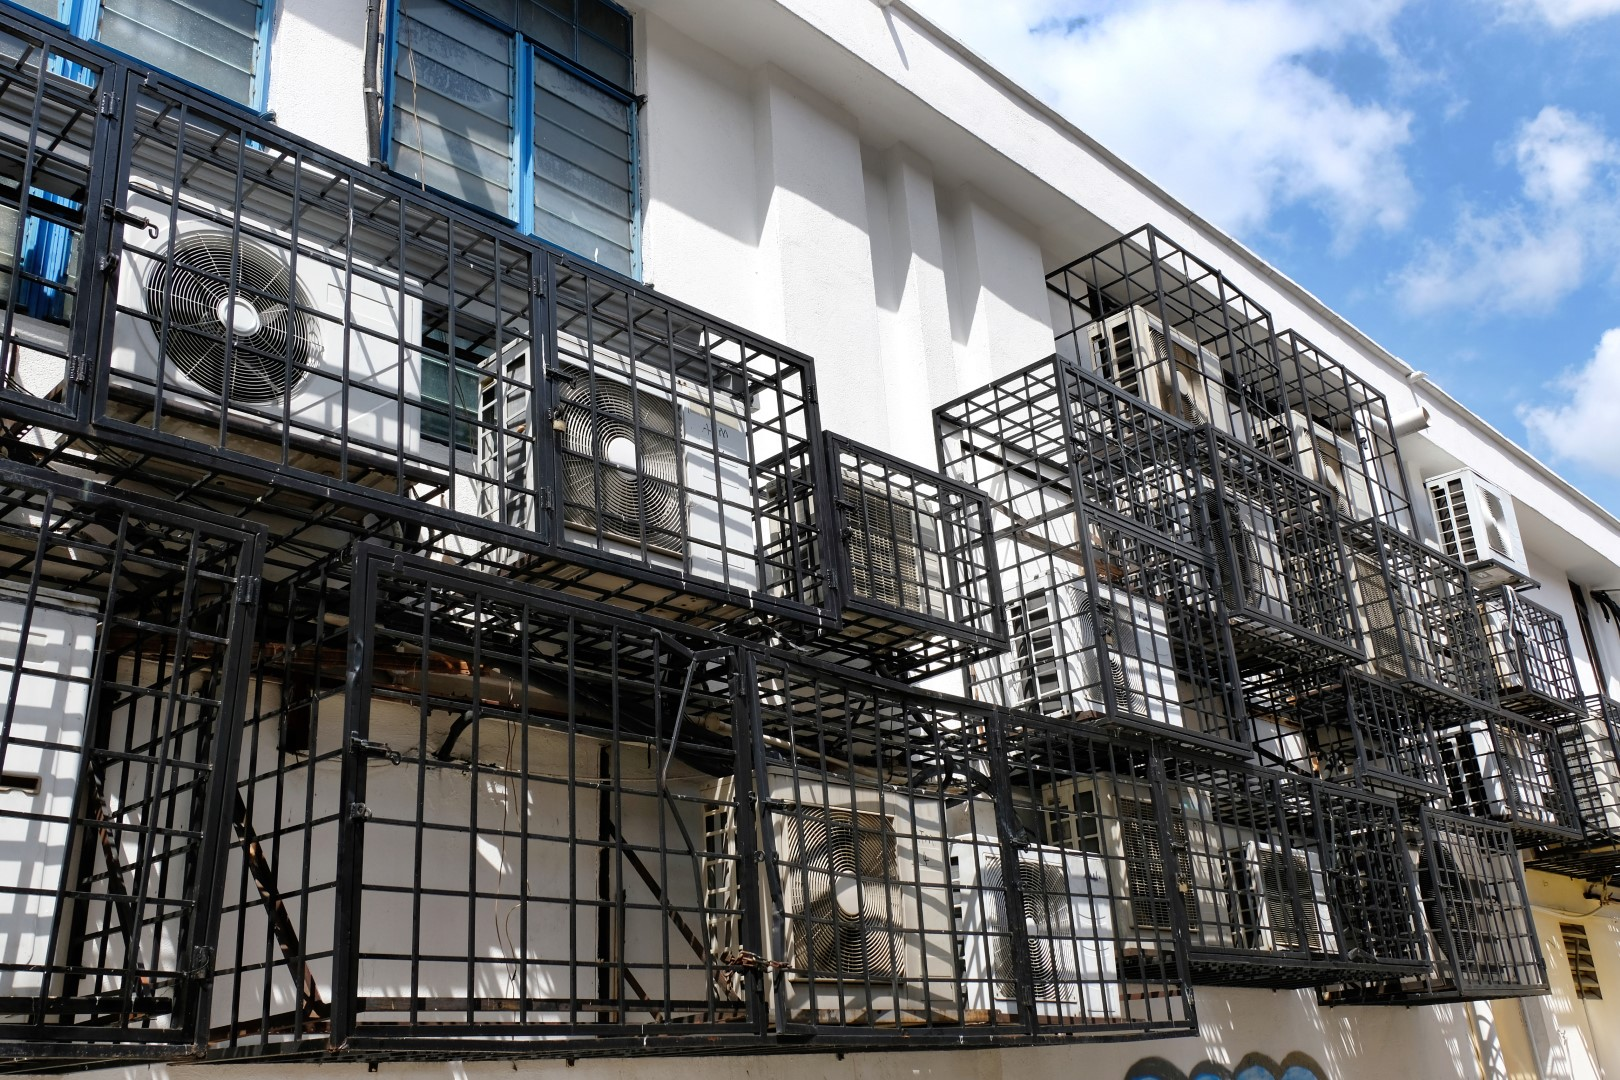 Cages and Enclosures -